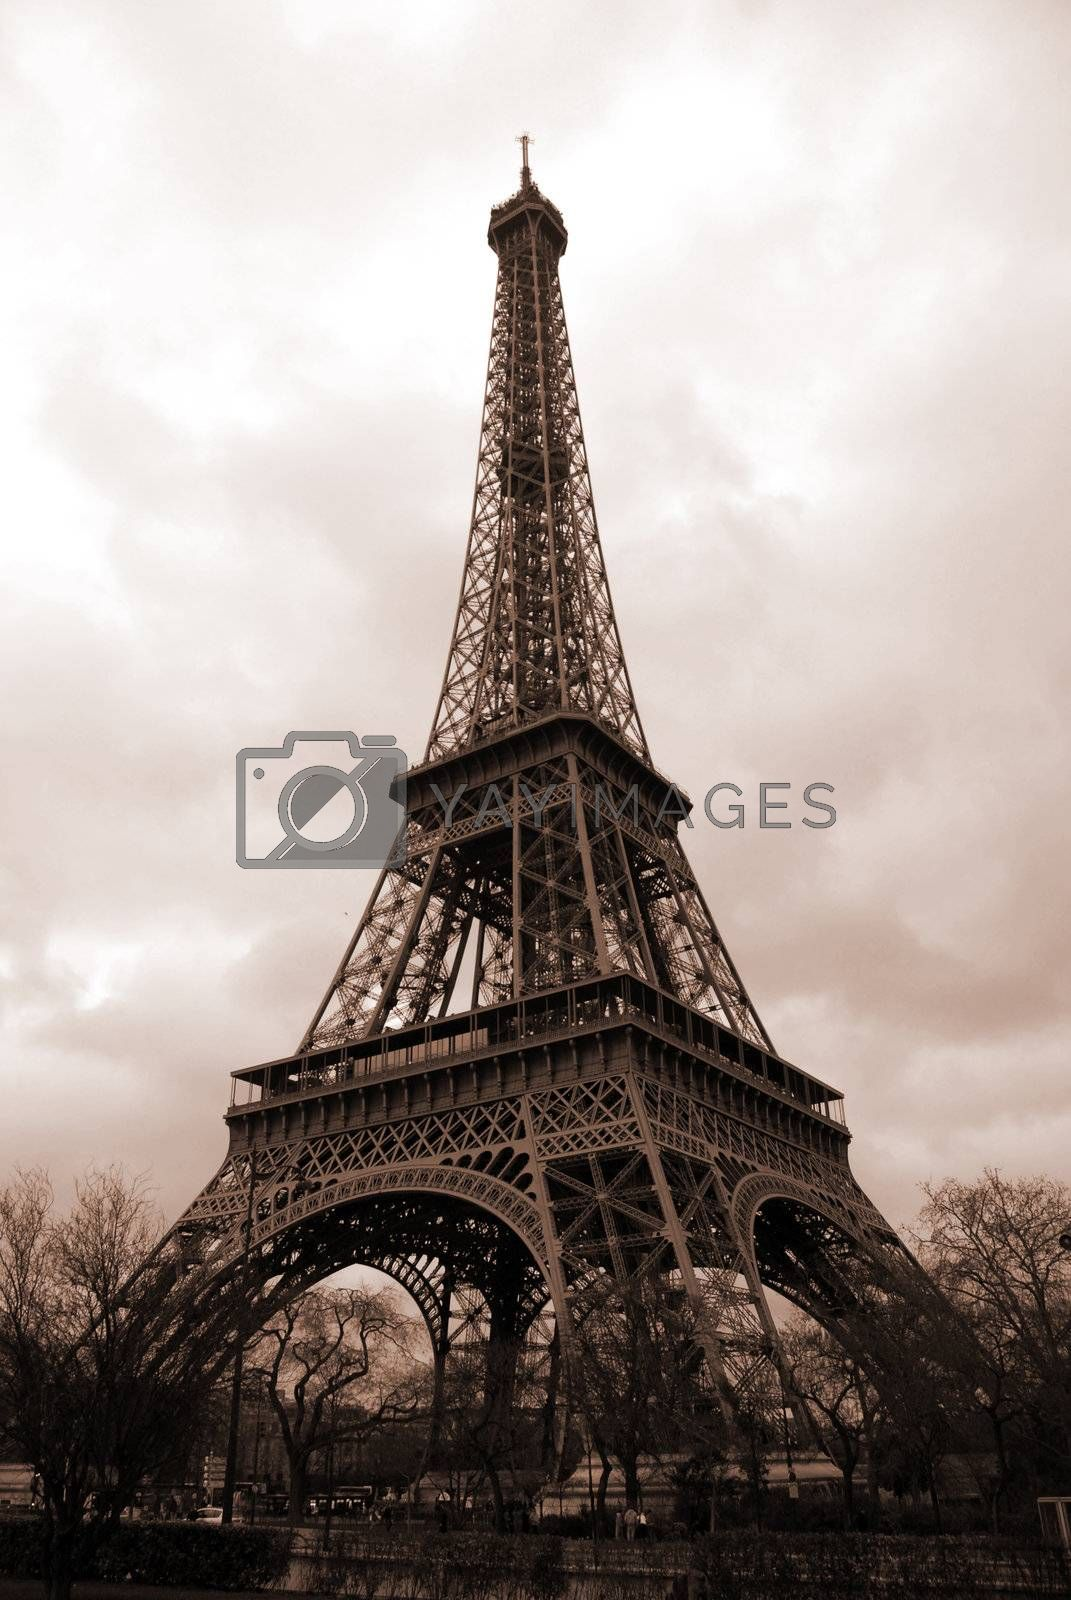 eiffel tower, majestic construction in iron in Paris